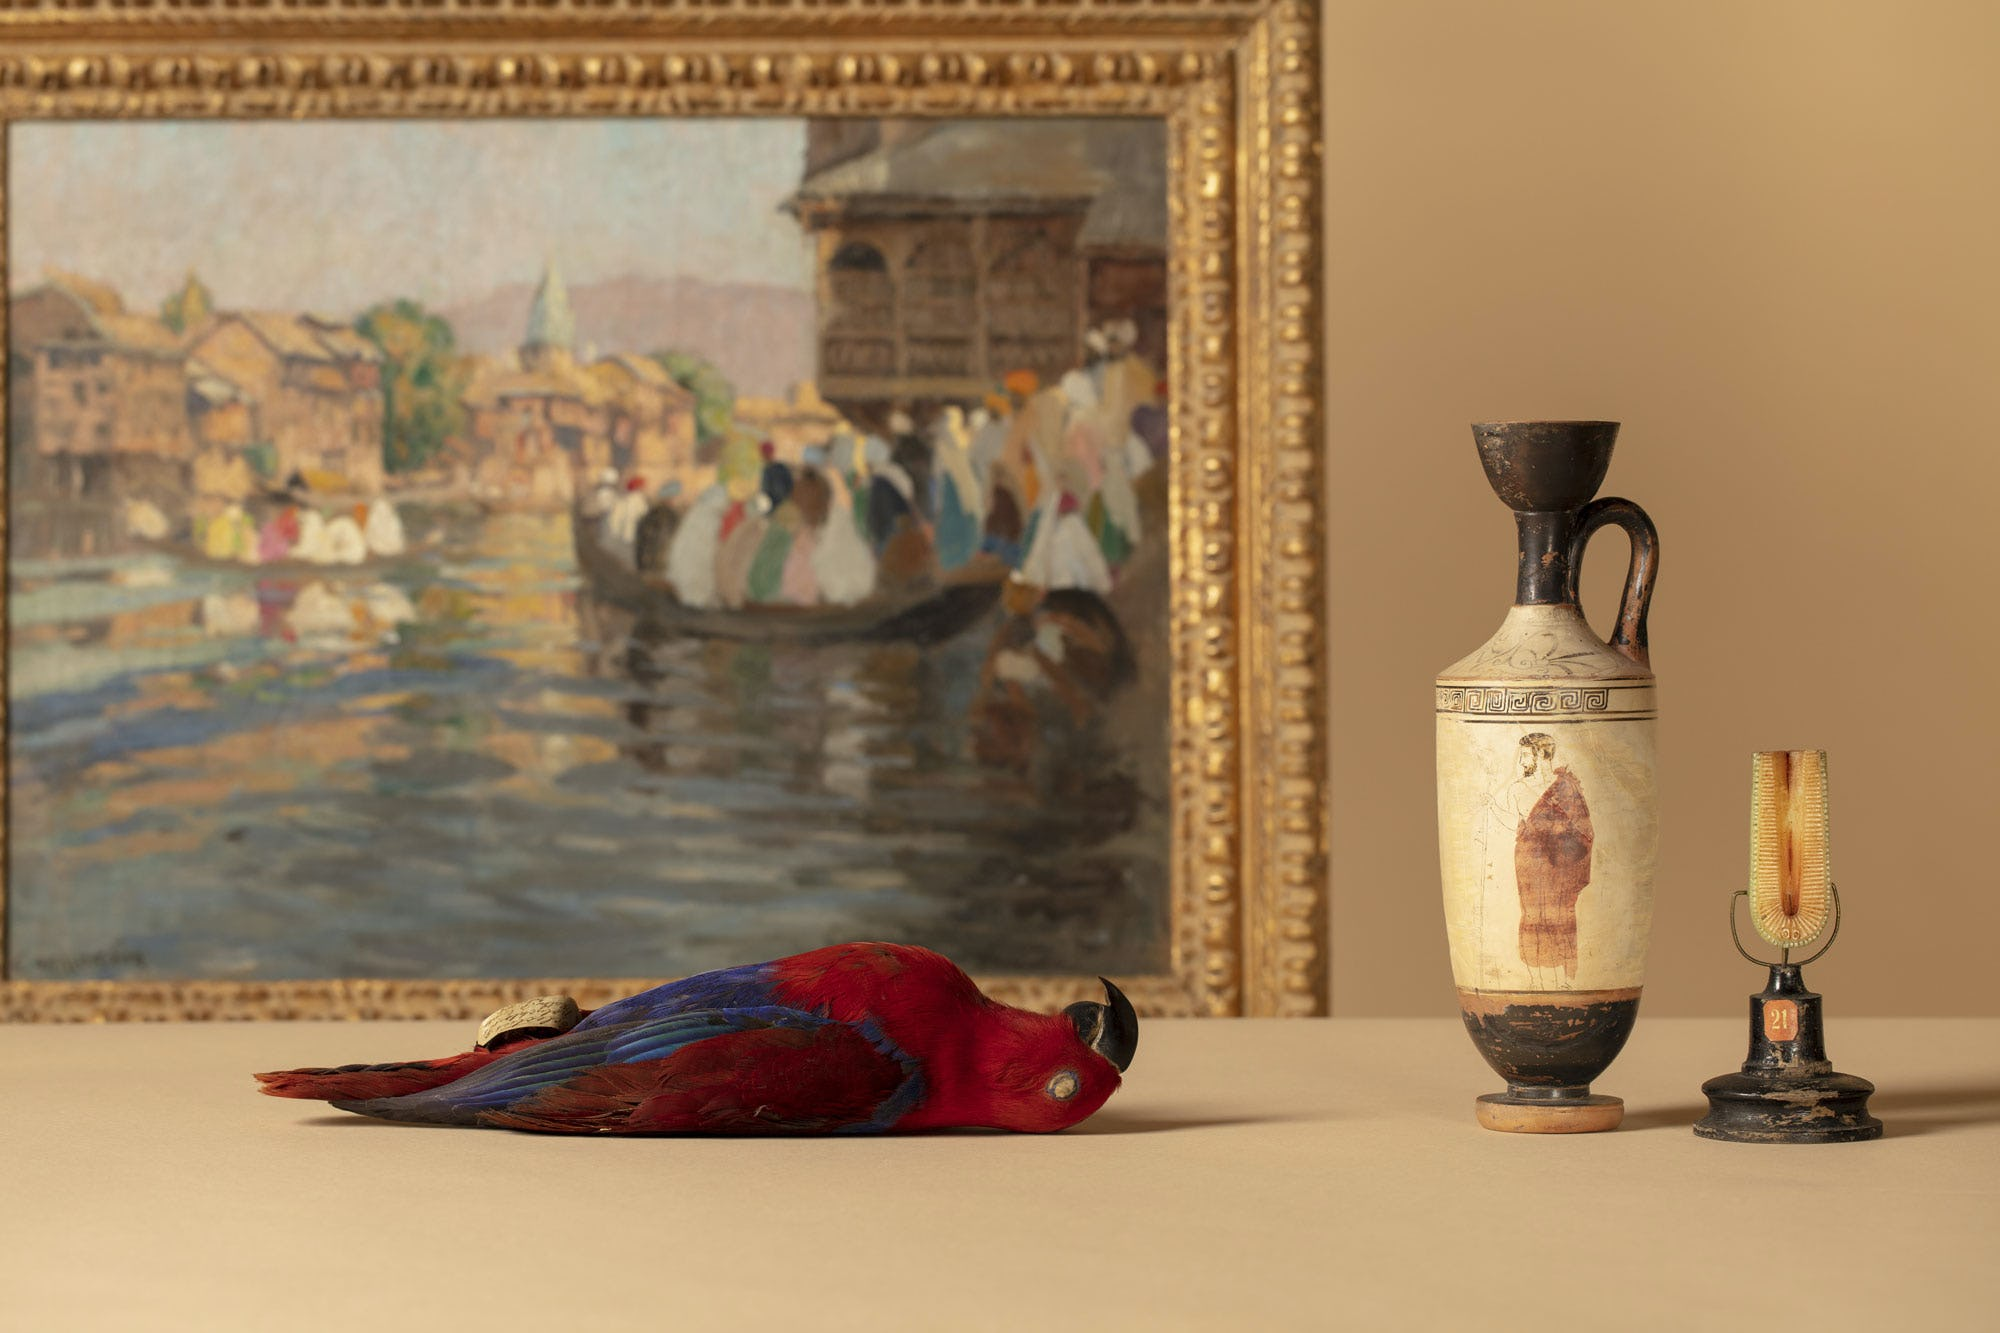 Still life of Museum artifacts, a dead parrot, painting and vase